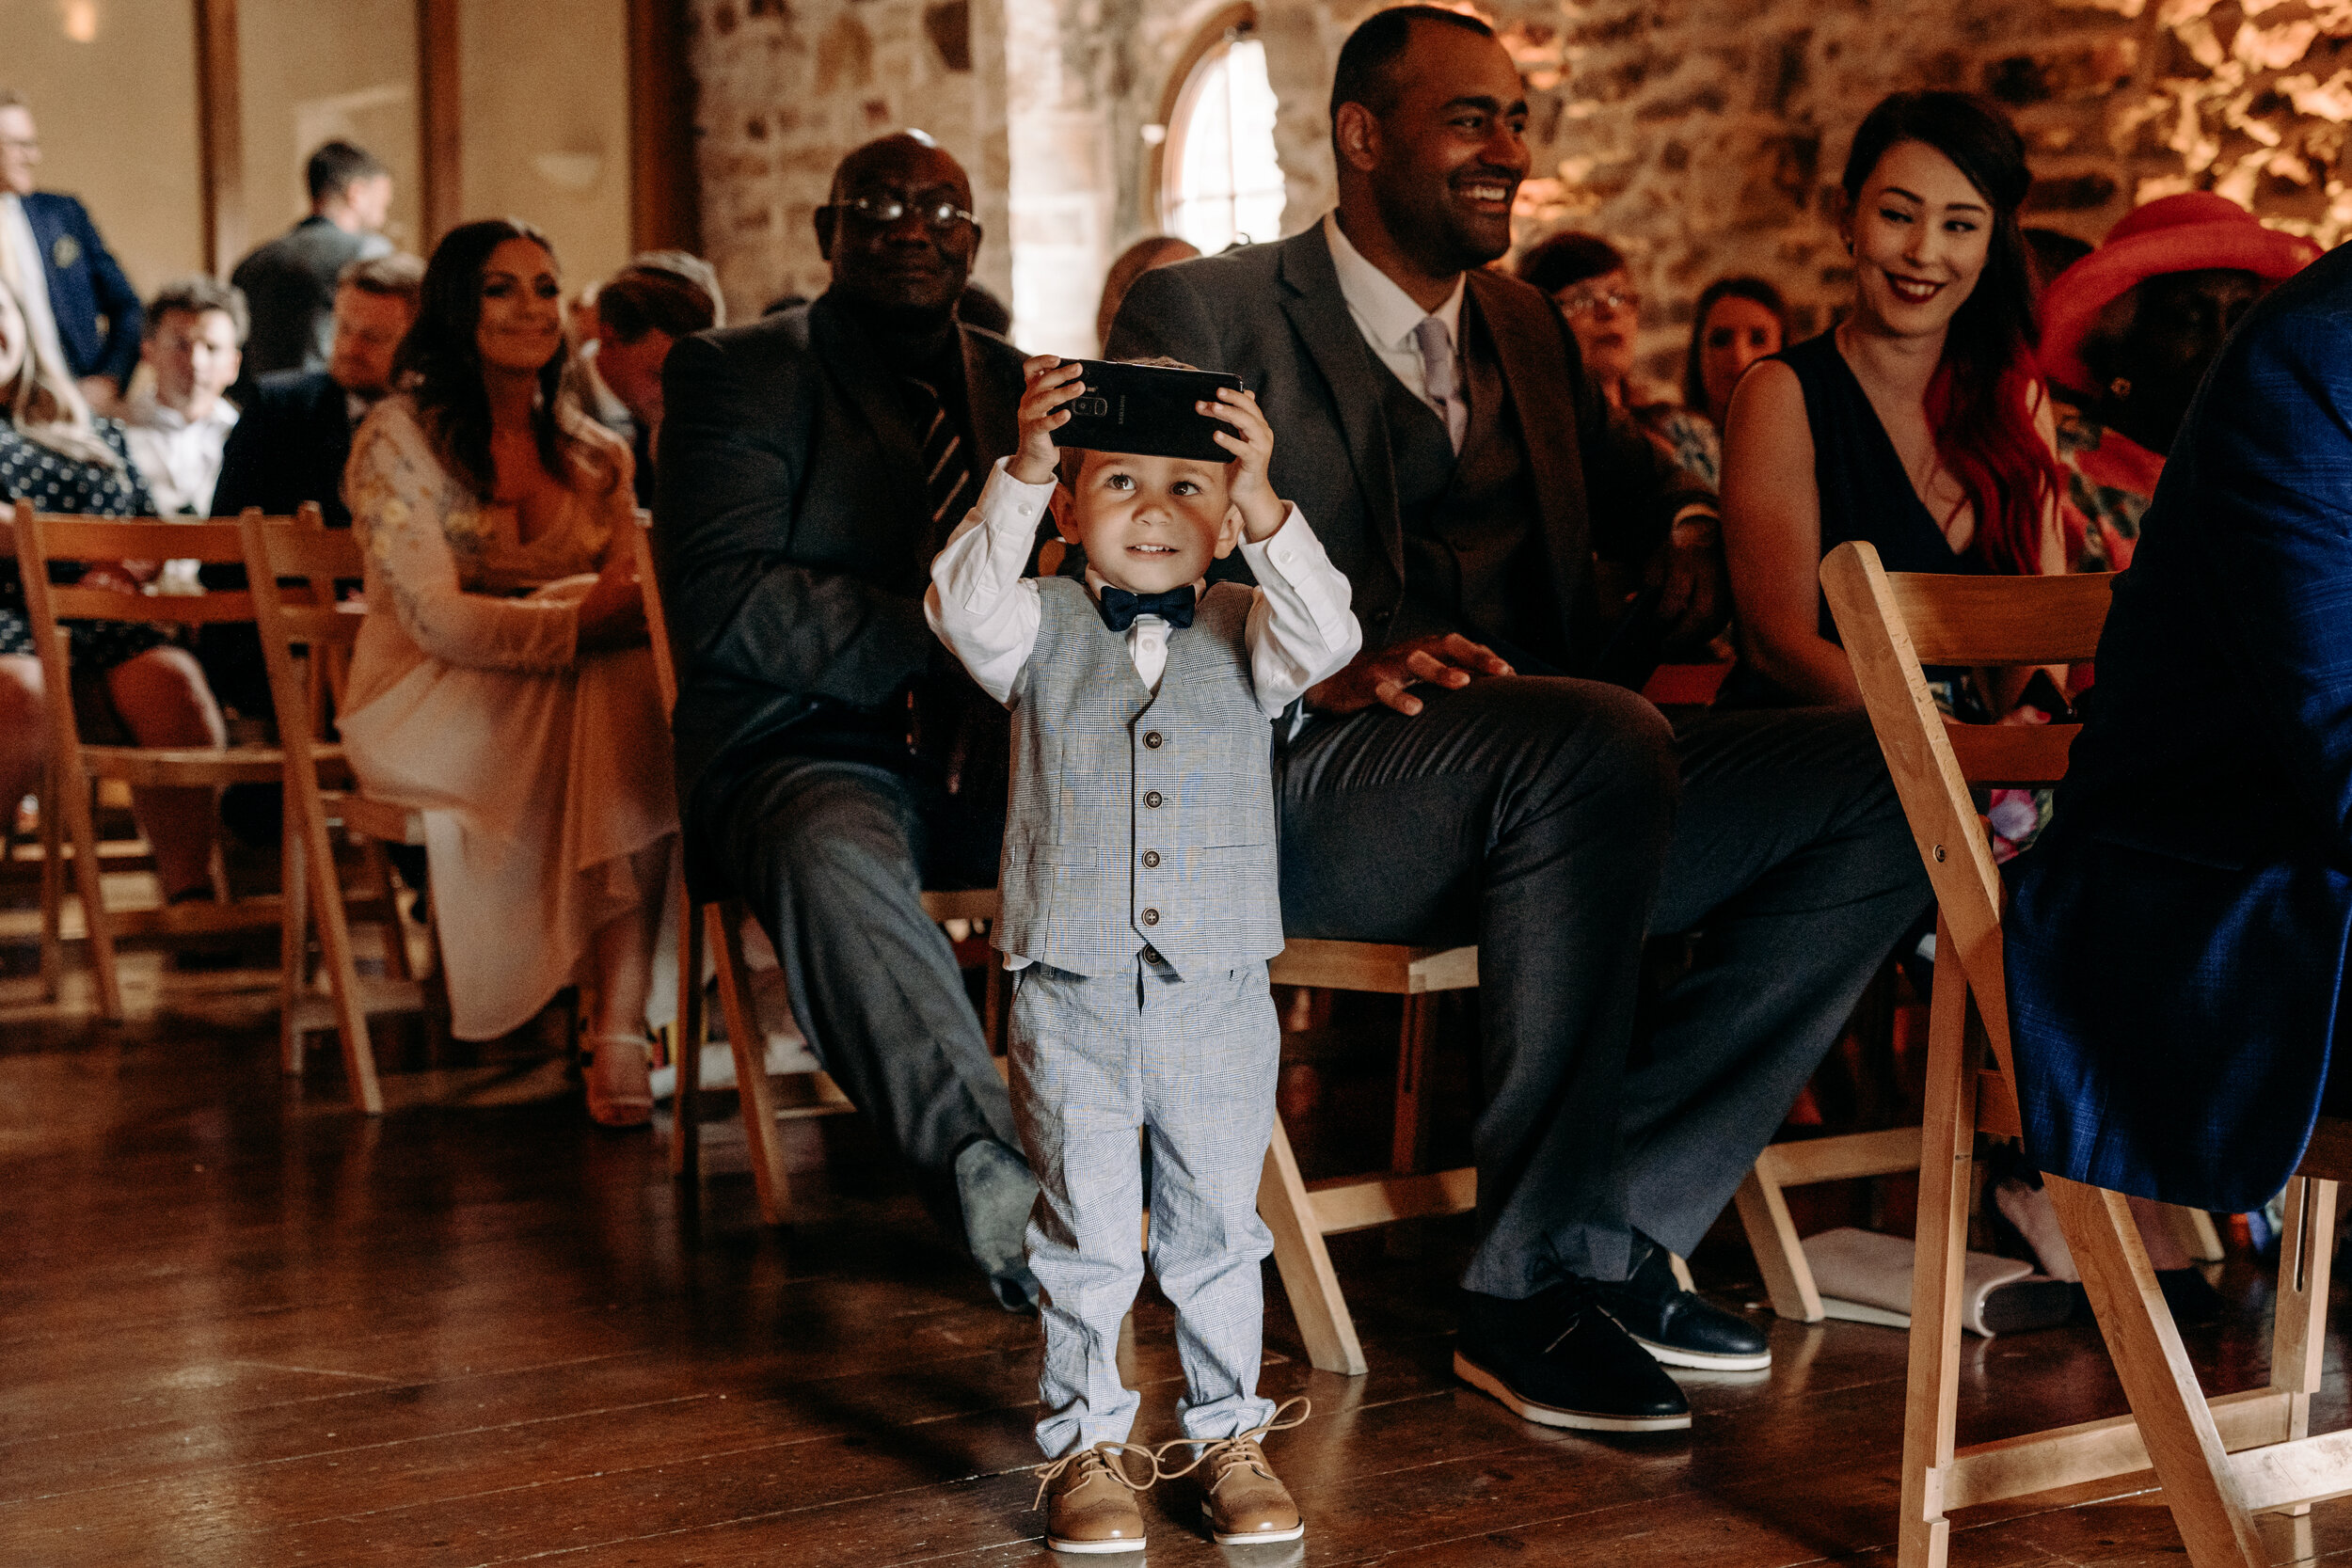 Child wedding photographer